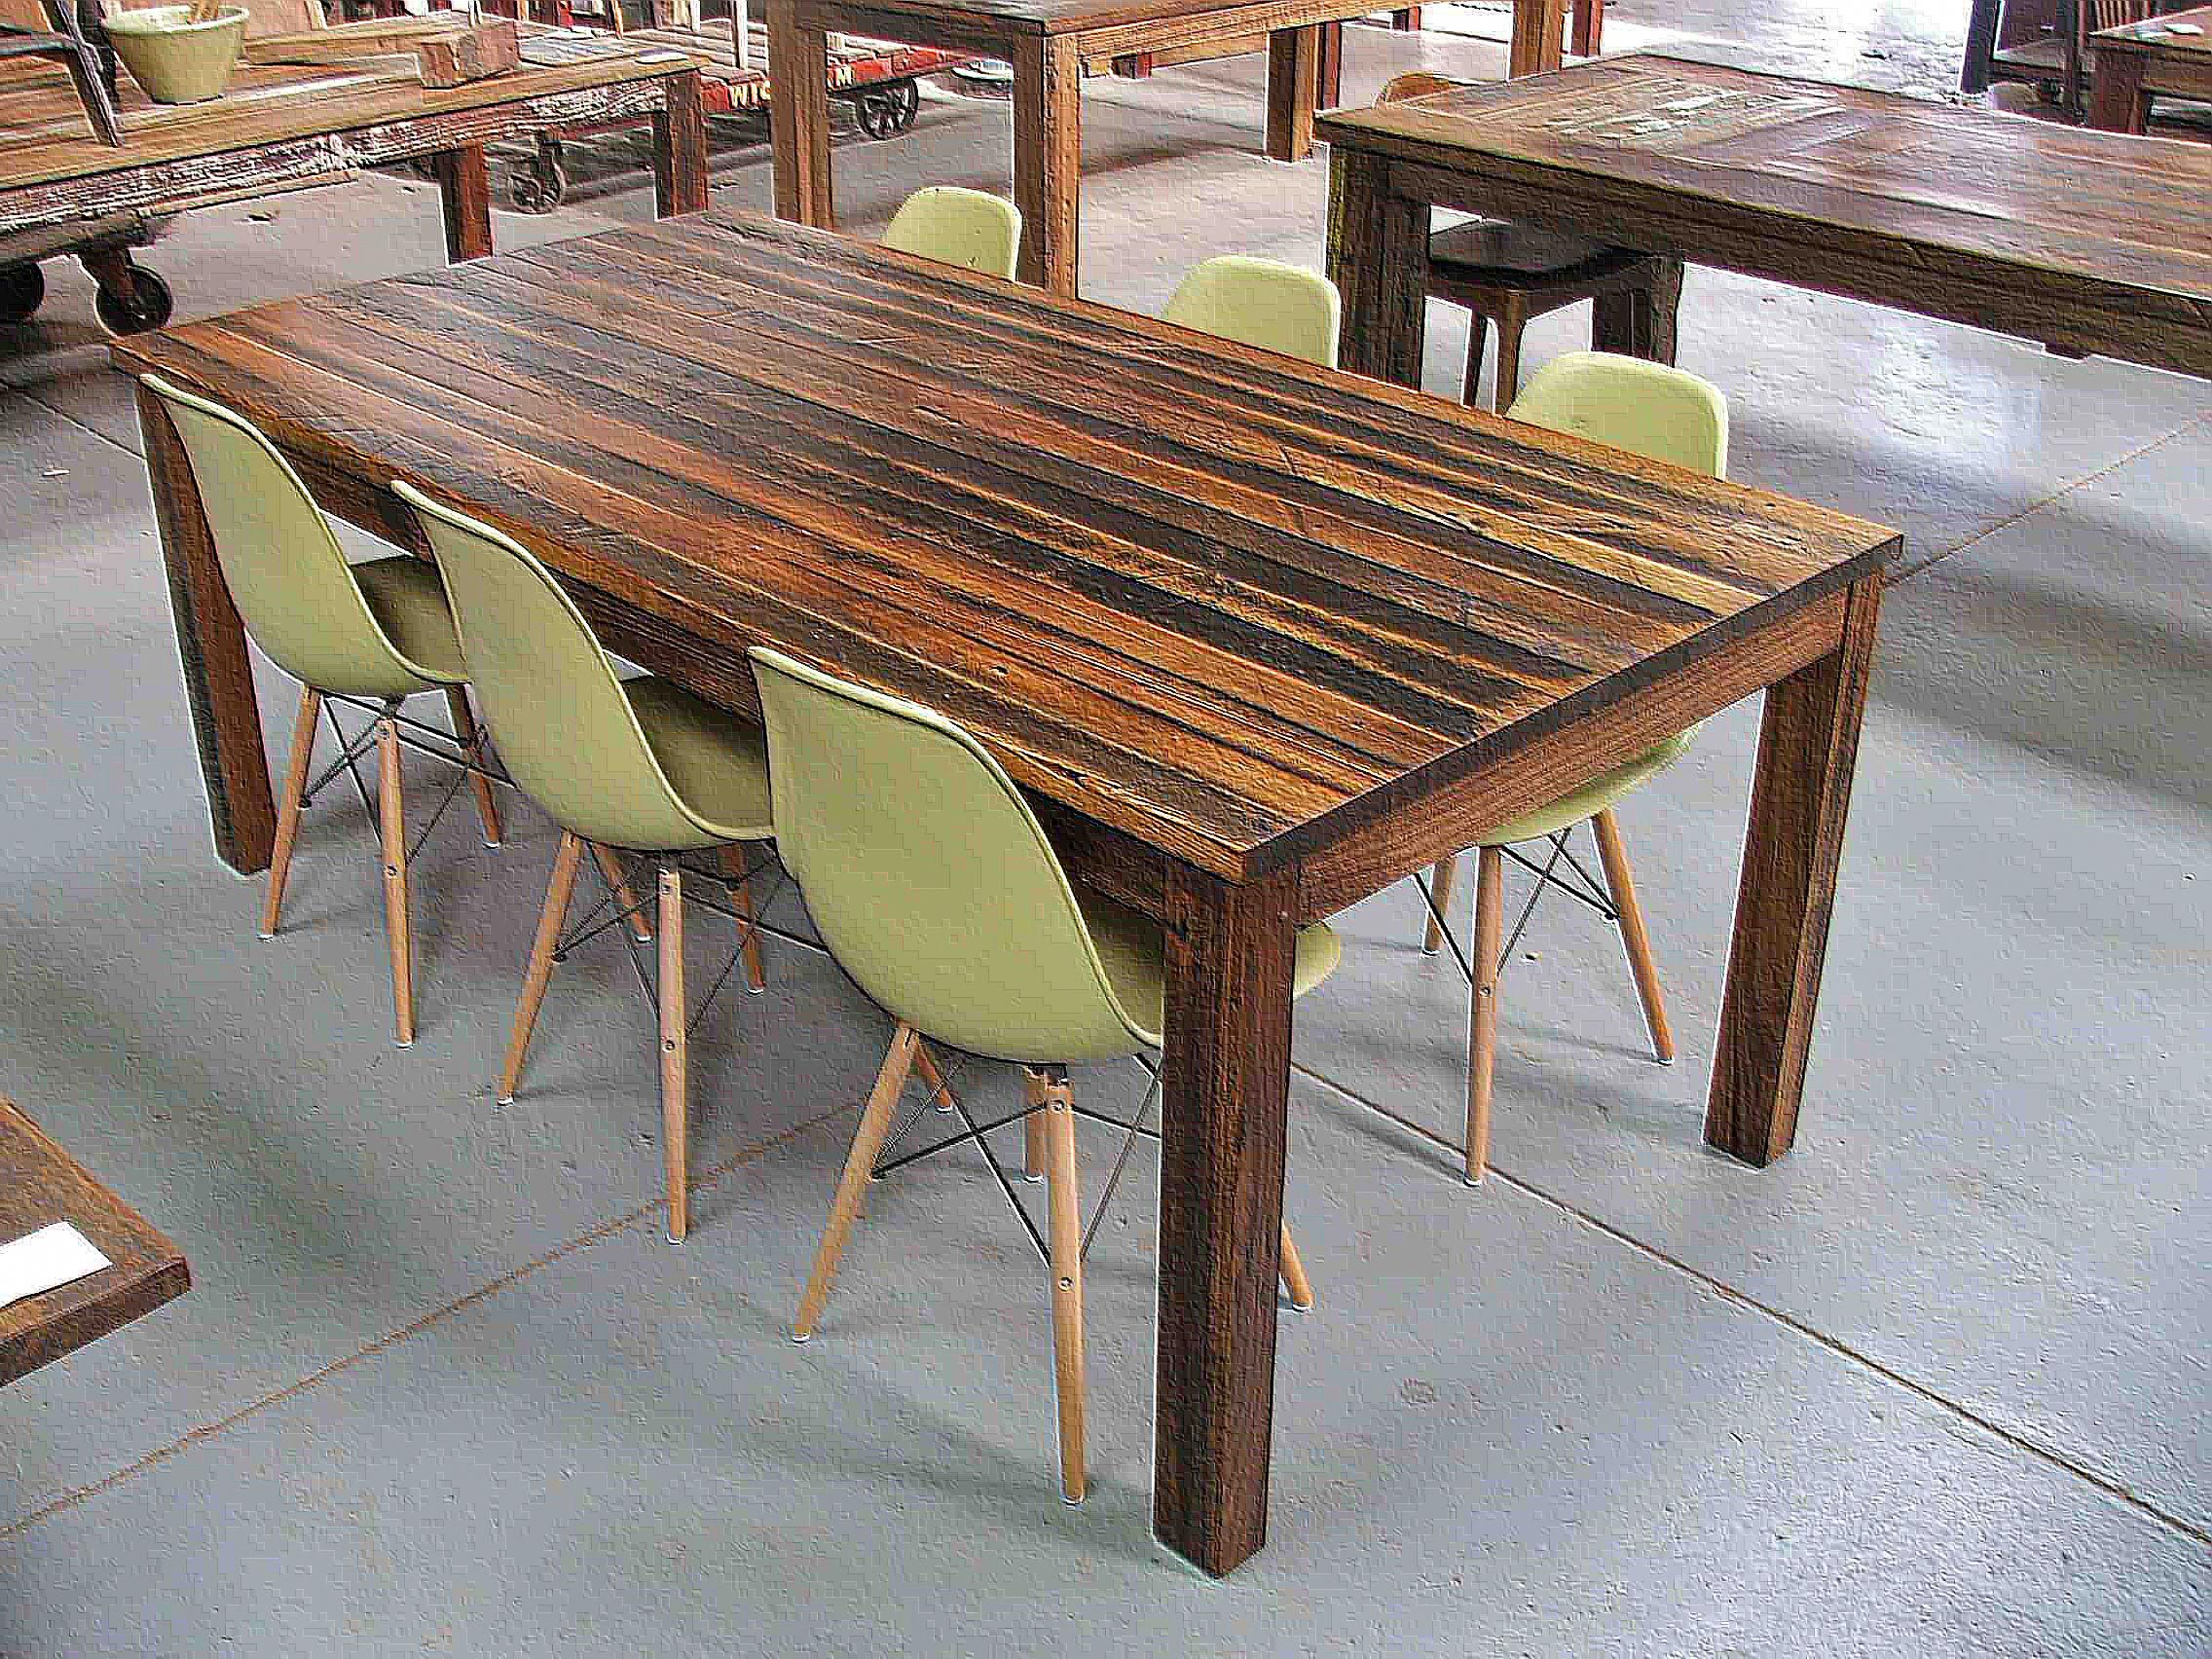 woodworking tools for sale near me # Recycled timber furniture, Recycled furniture design